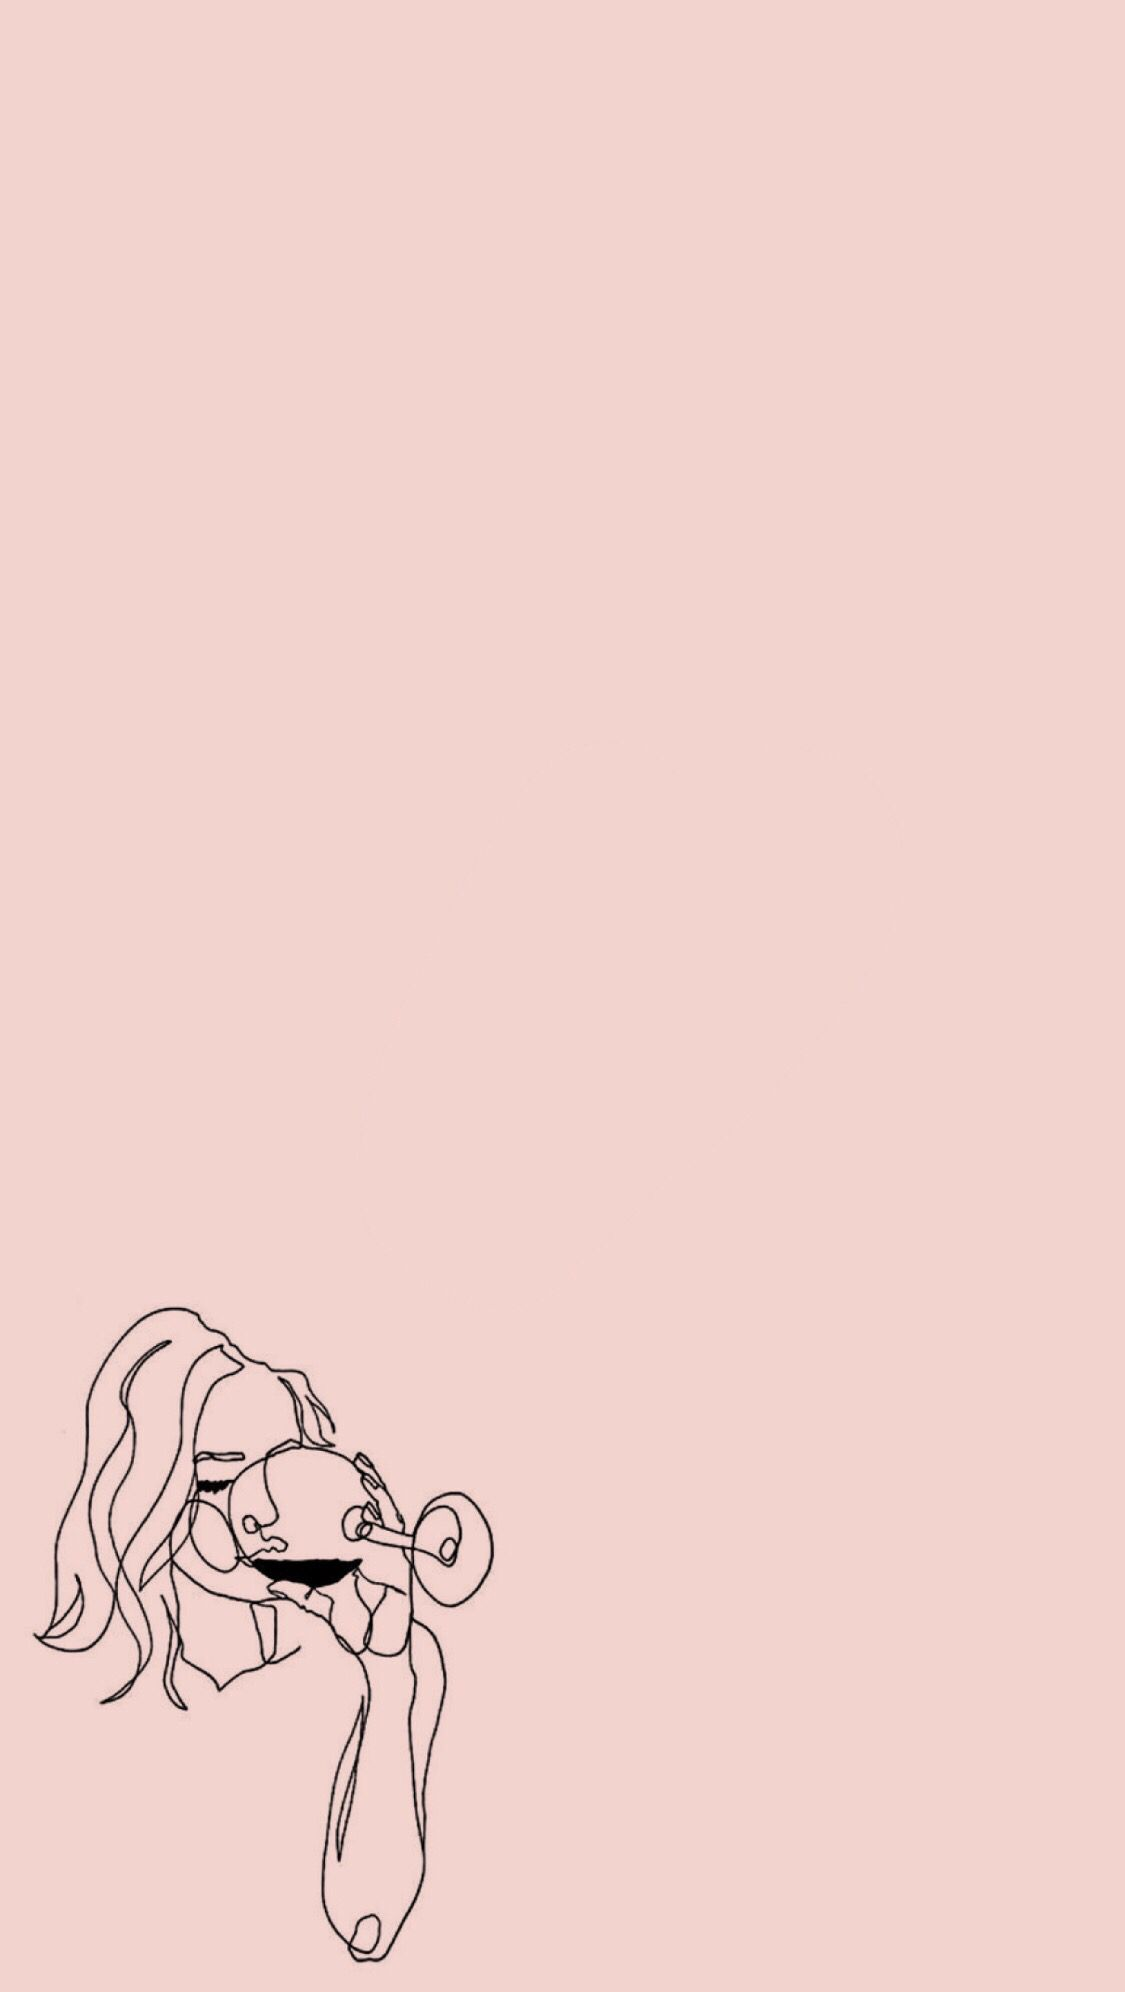 Line Art Iphone Wallpapers Top Free Line Art Iphone Backgrounds Wallpaperaccess